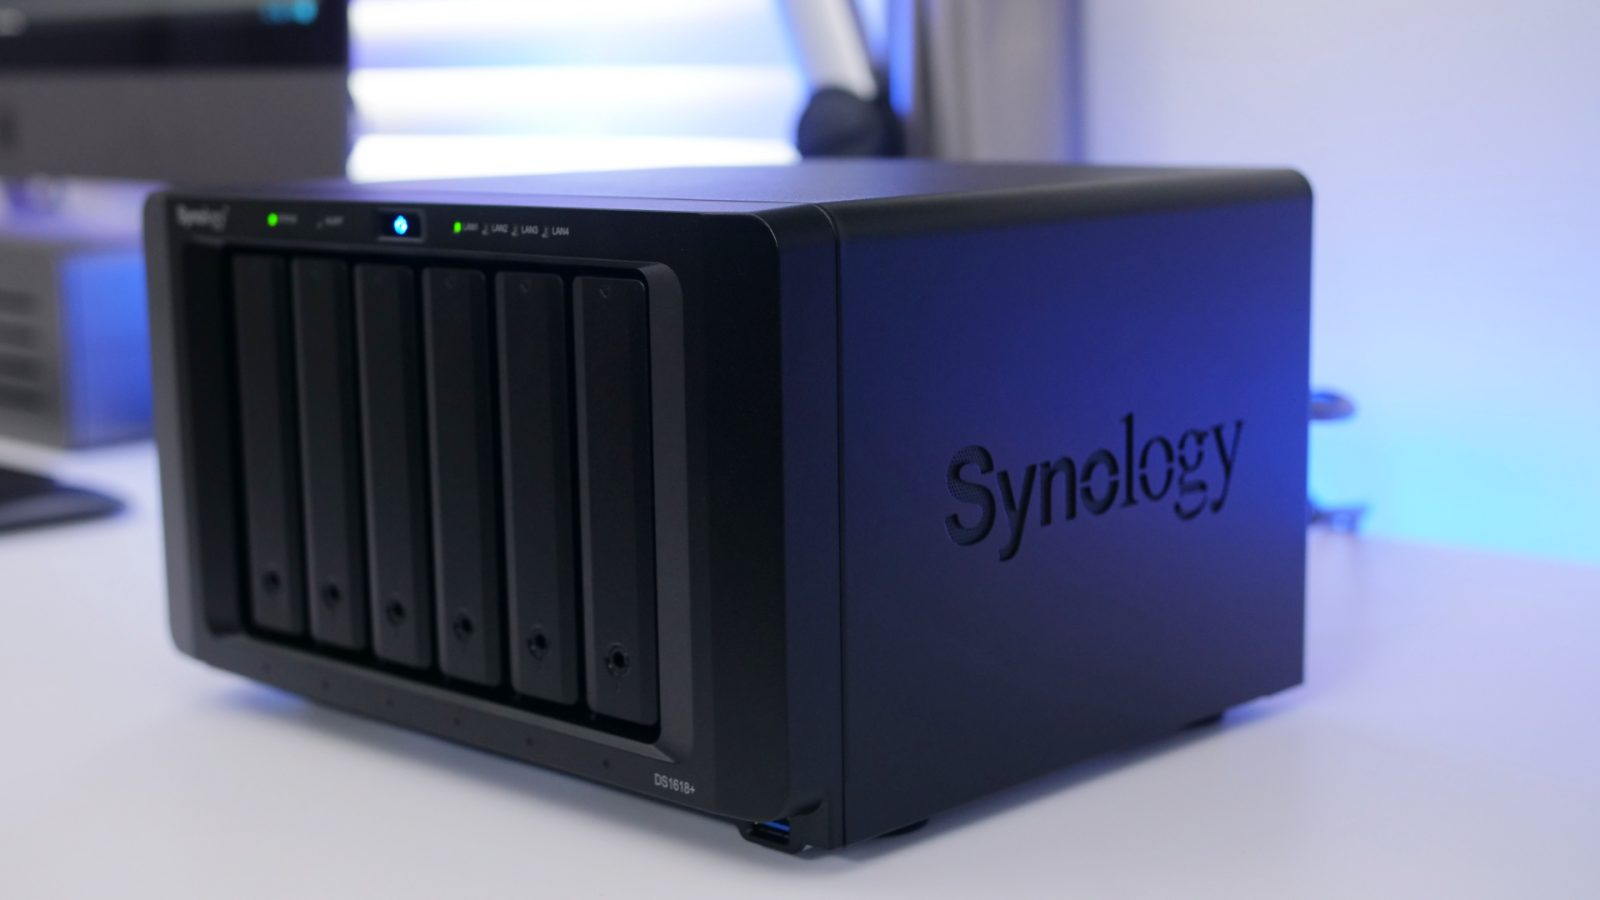 Back to the Mac 009: How to use a Synology NAS for Time